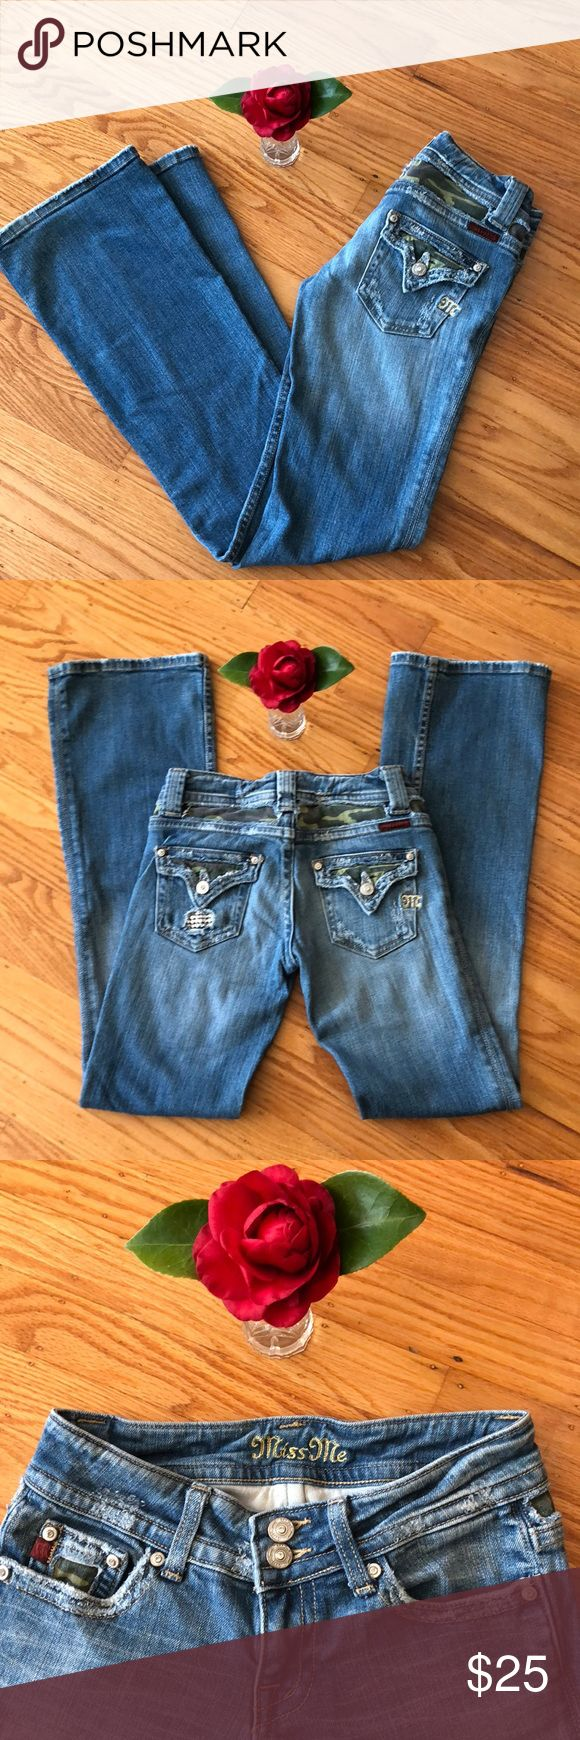 "🌺 Miss Me; Blingy Flare Faded Jeans W25/L31 NICE! Looking for a pair of well-broken in Miss Me flare-style jeans at a fraction of the retail sticker price? Shop here 😊 Well-loved jeans with many miles of wear left. Size: W25/L31. Blingy, Signature Miss Me hardware, Camoflauge Material & 2 pockets in back + 3 in front. Perfect to wear to Festivals, Concerts & for everyday wear. No holes. Thank you for 🛒 here. Please check out other Name Brand & ""fun finds"" in my closet. Bundle to save 💰…"